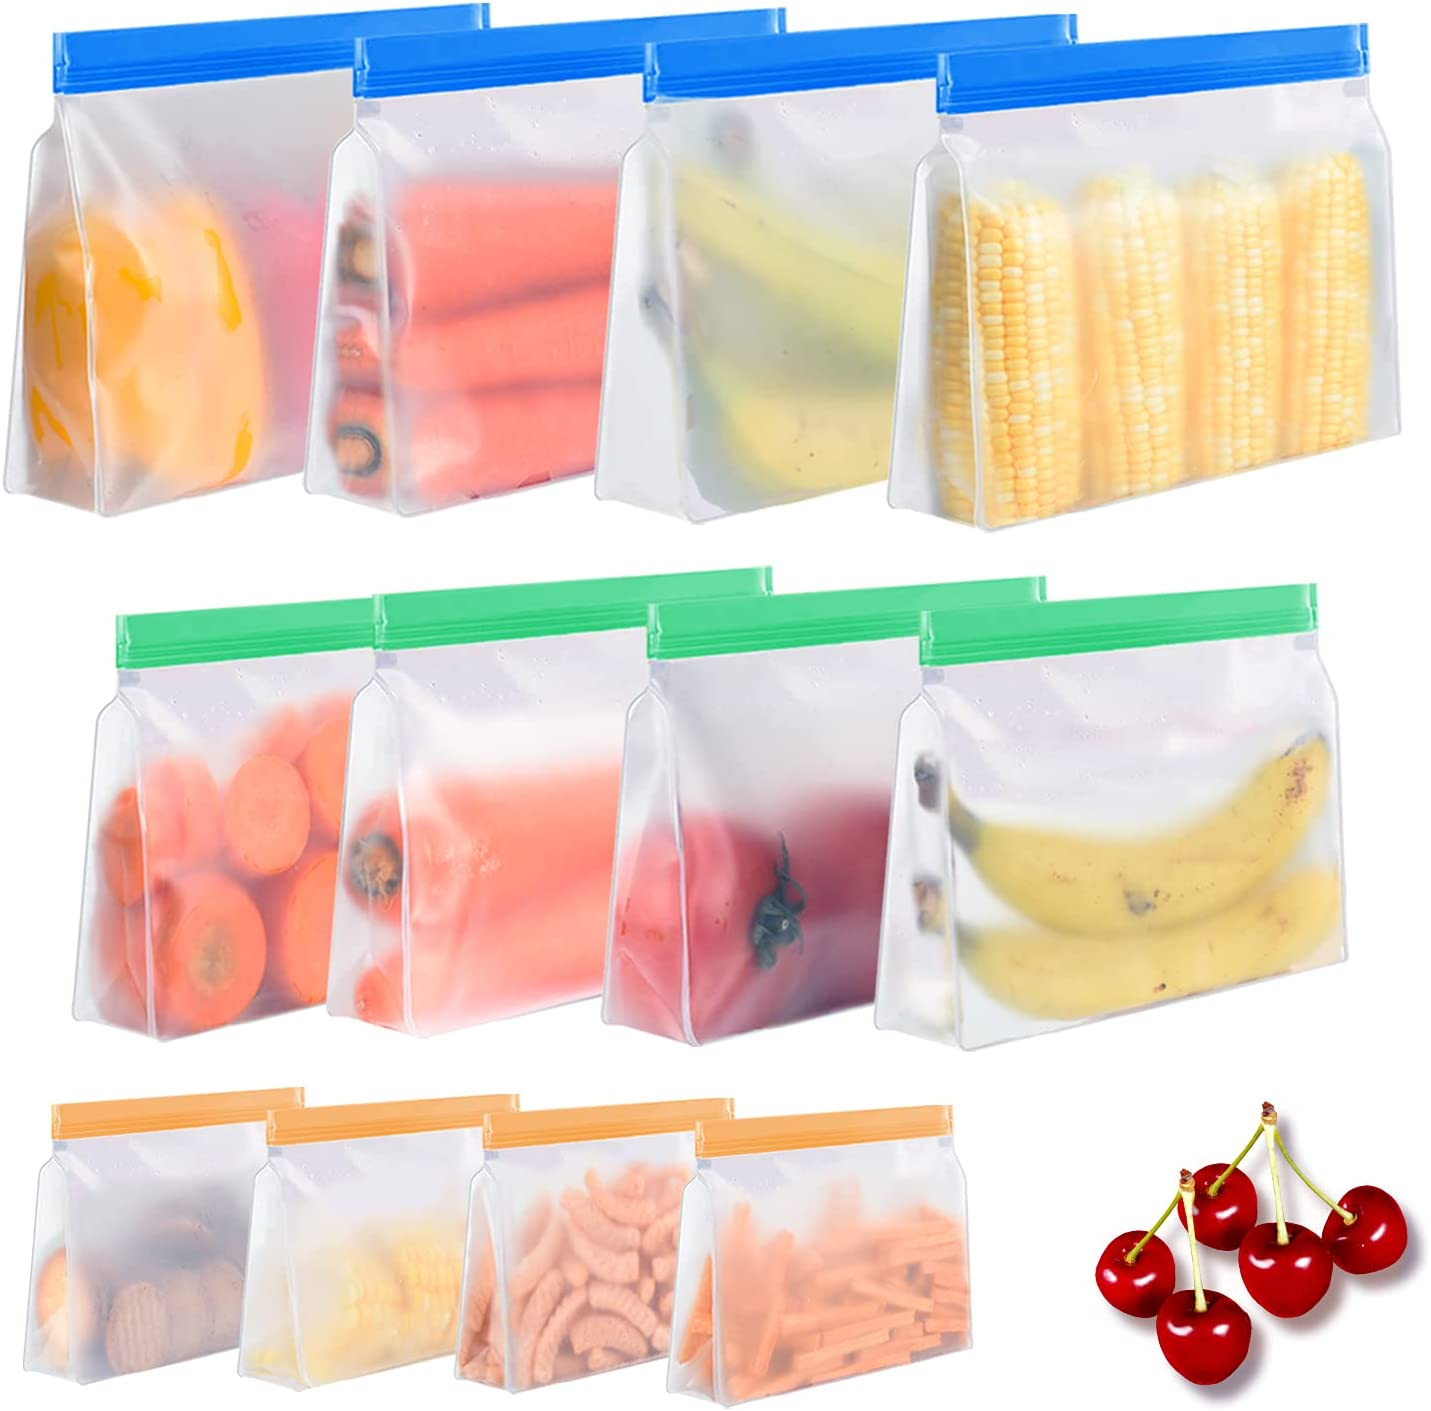 Reusable Food Storage Bags 12 Pack - Stand Up Food Grade Leakproof Freezer Bags, 4 Reusable Gallon Bags + 4 Reusable Sandwich Bags + 4 Reusable Snack Bags, BPA-Free Lunch Bags for Meat Fruit Cereal Veggies Fridge Storage Home Organization